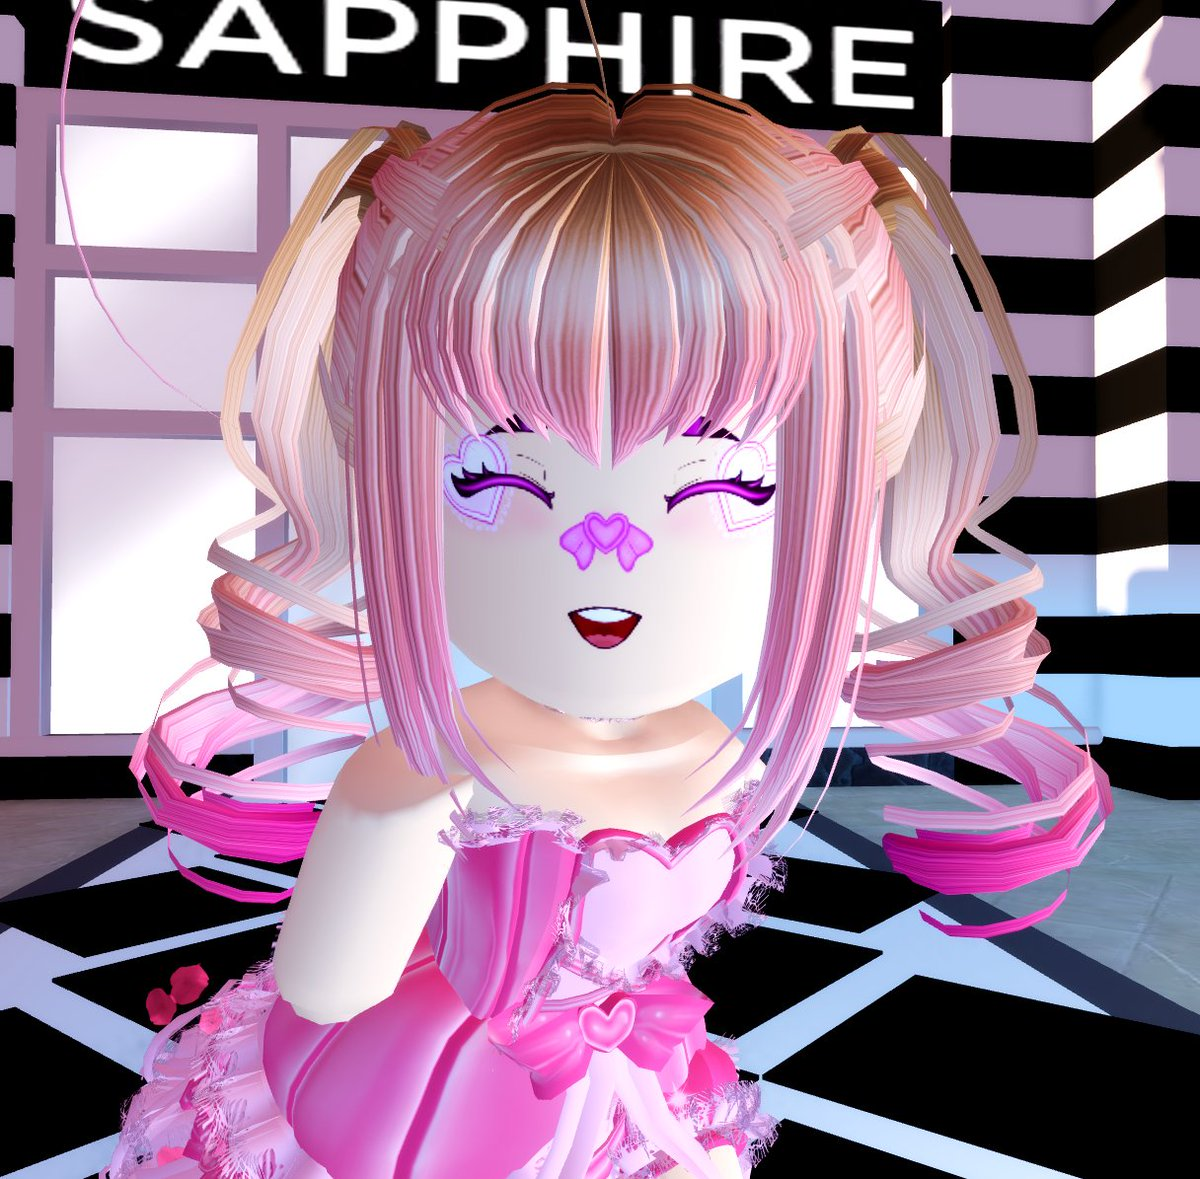 Roblox Blush Decal Id Kᑌᖇo V Twitter New Face Pack Set Recreations Thread Eee I Love These Faces And The Sets Are So Gorgeous As Well Should I Make A Face For The Charming Prince Set